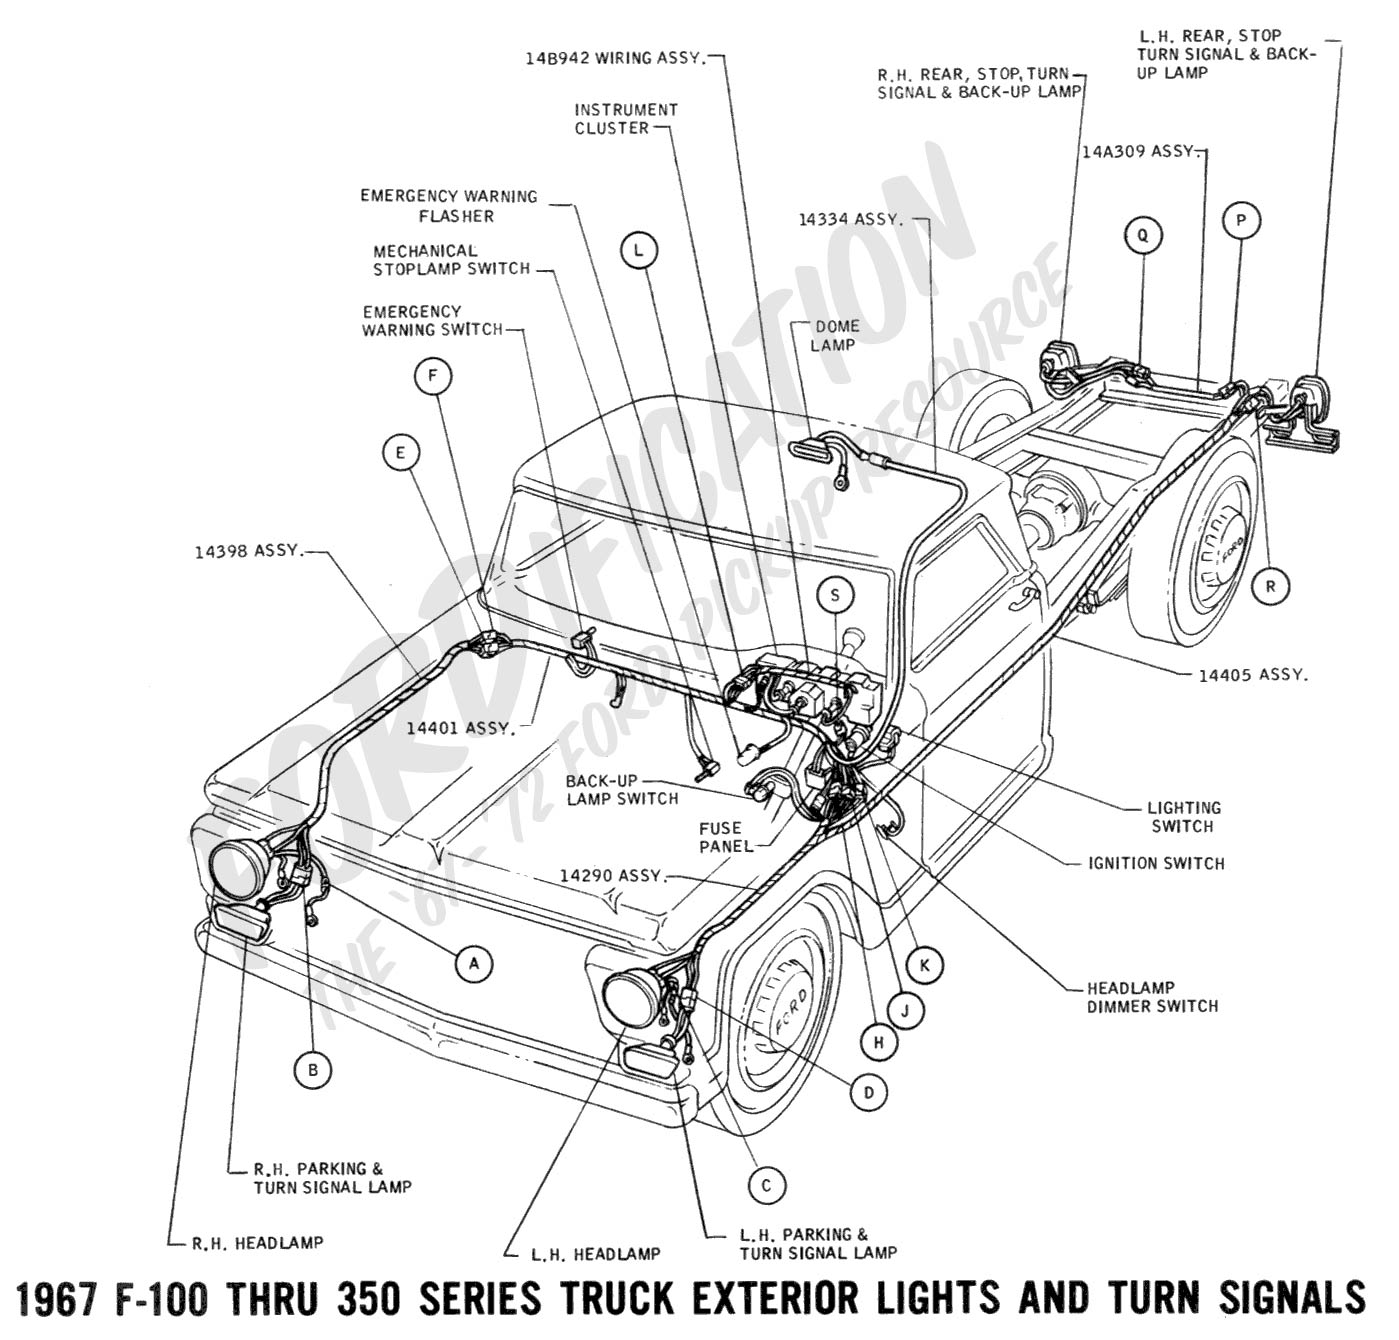 wiring 1967extlights01 ford truck technical drawings and schematics section h wiring 1999 ford ranger xlt wiring diagrams at crackthecode.co